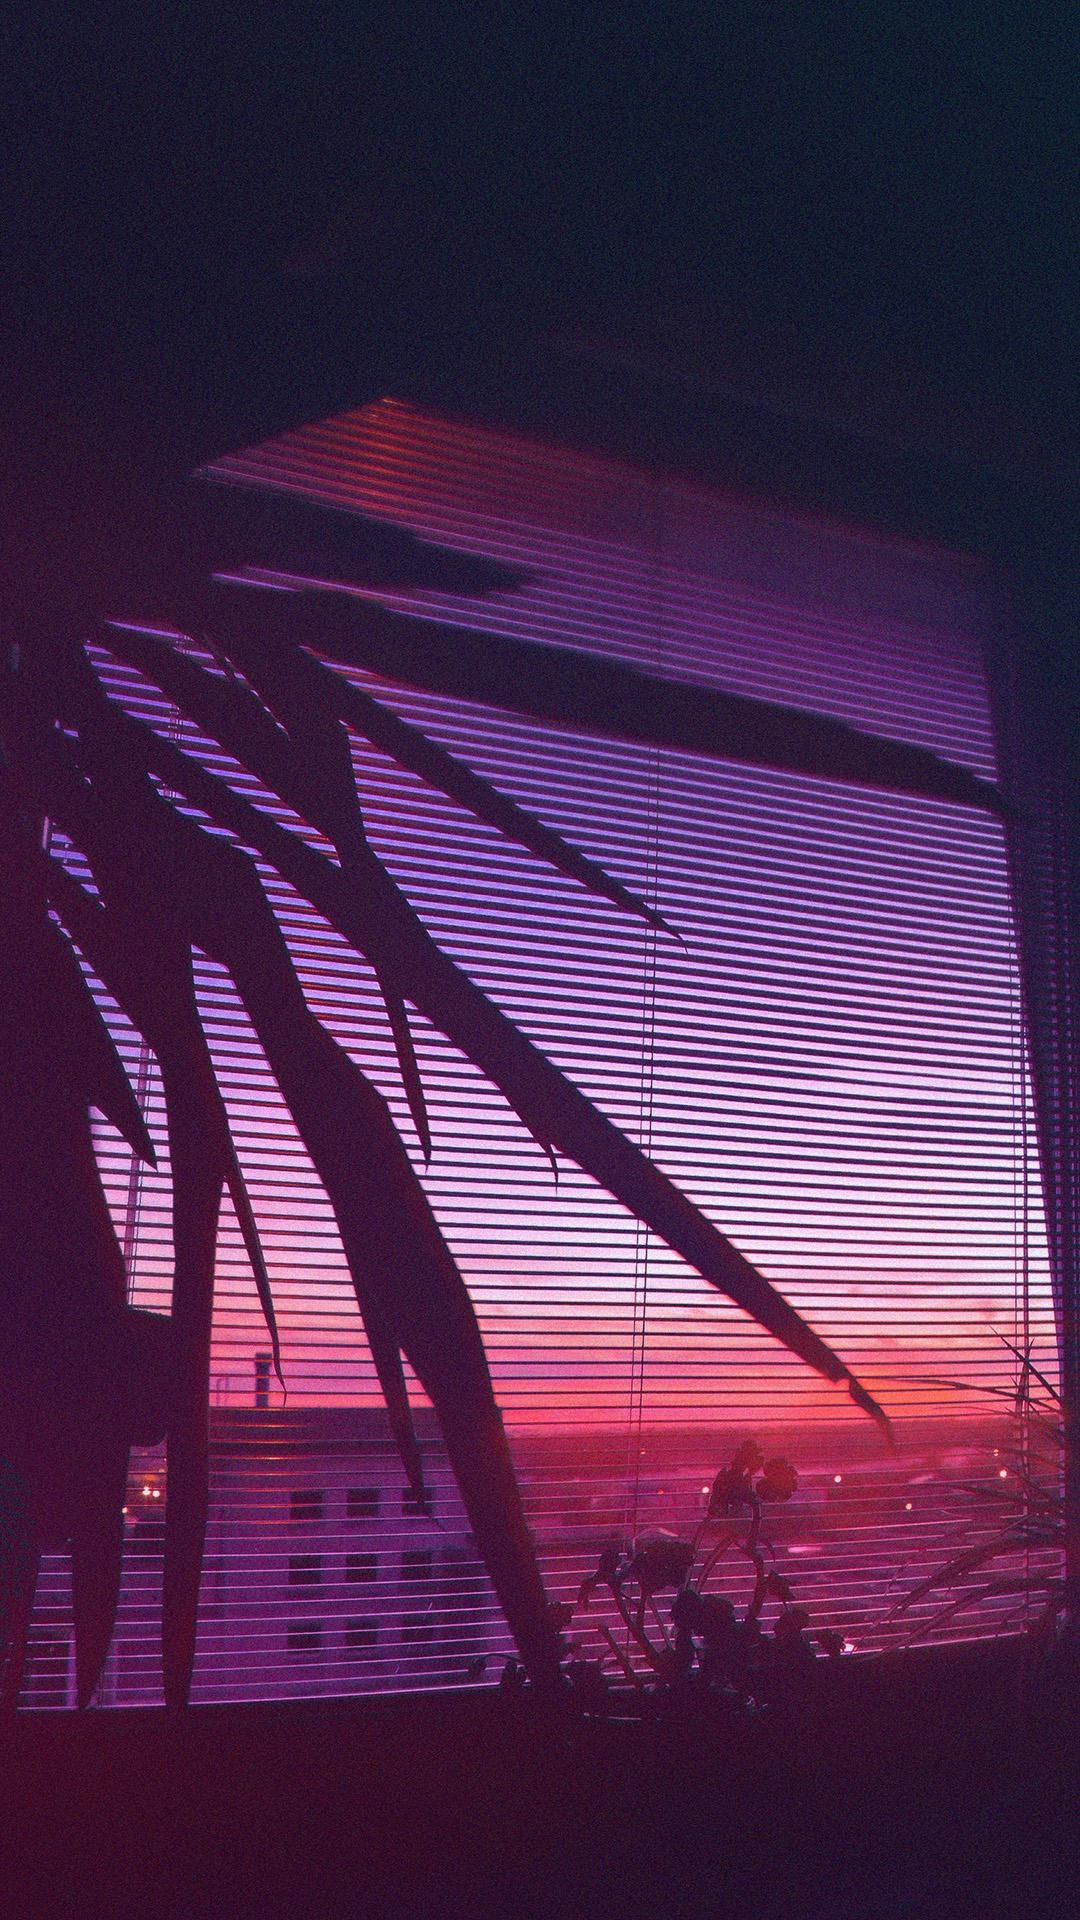 New retro sunset Retro wallpaper, Retro wallpaper iphone